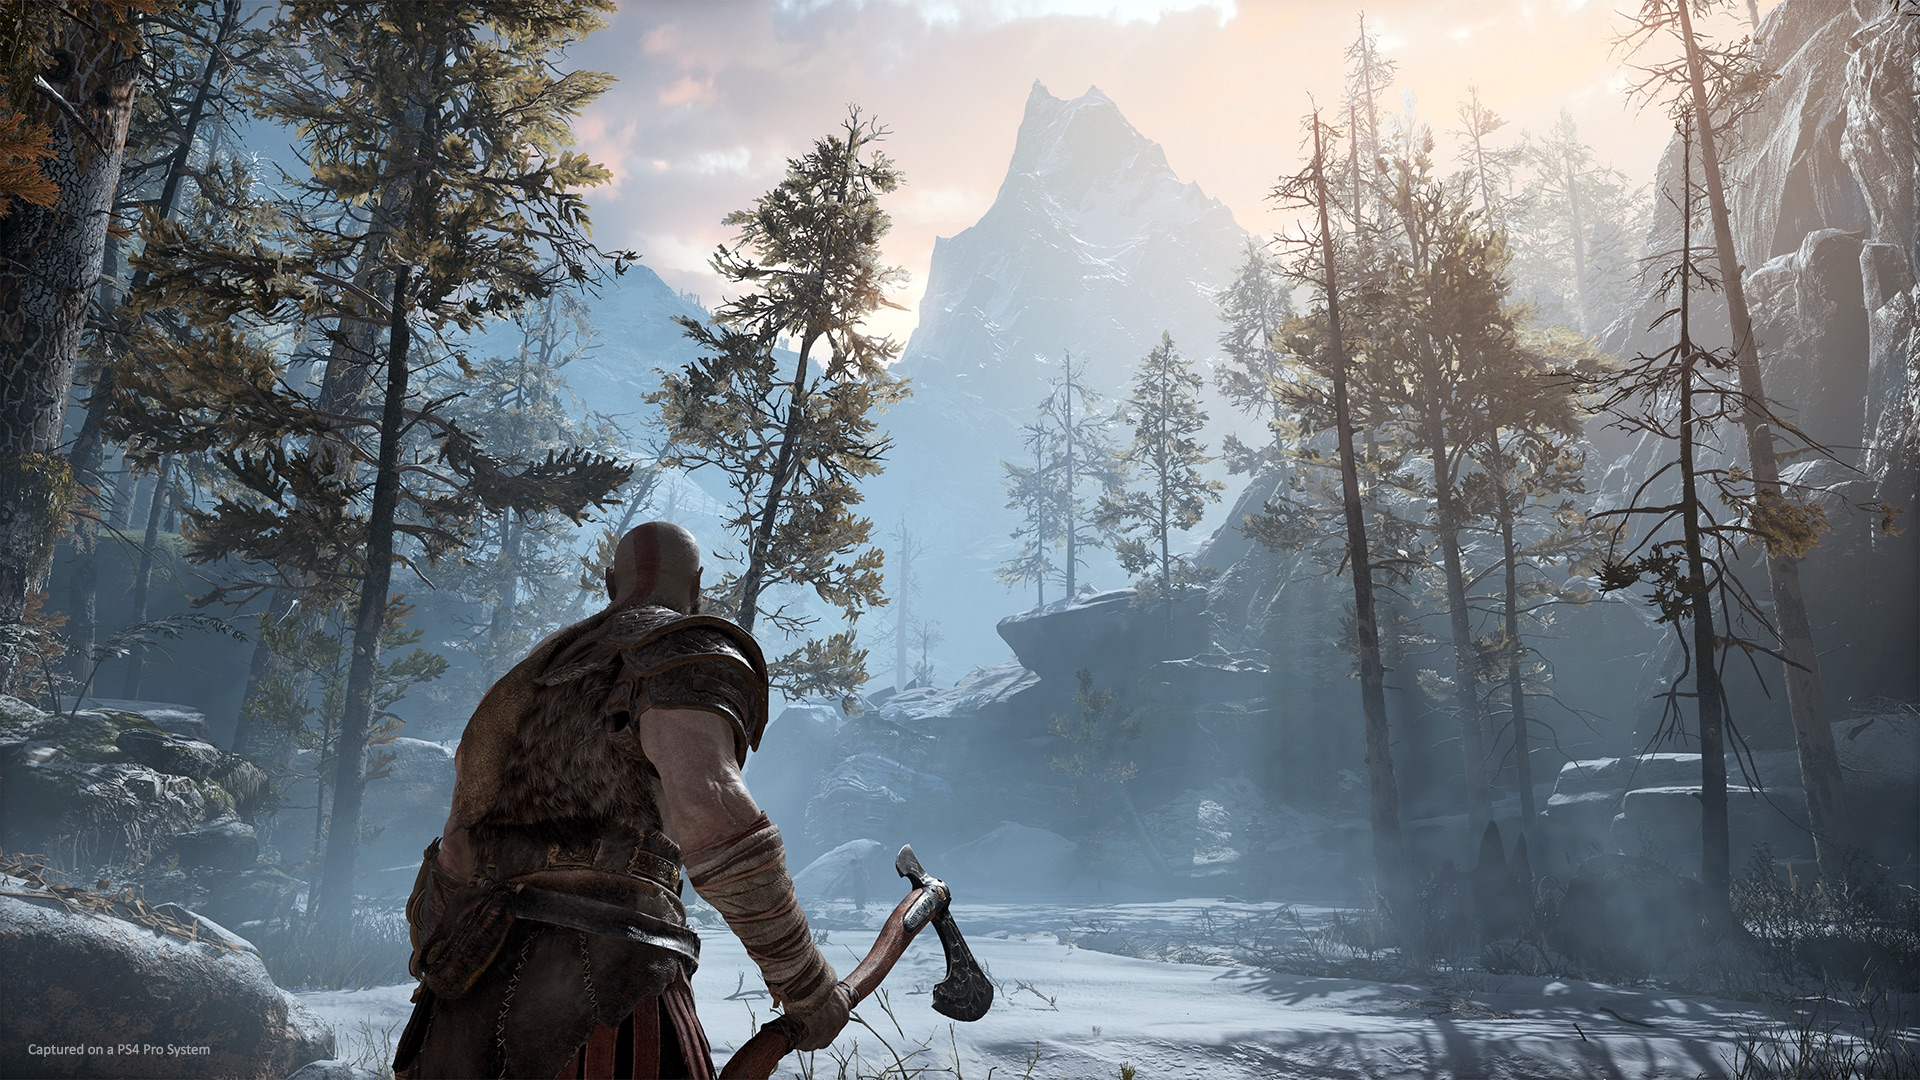 The new God of War game for the PS4